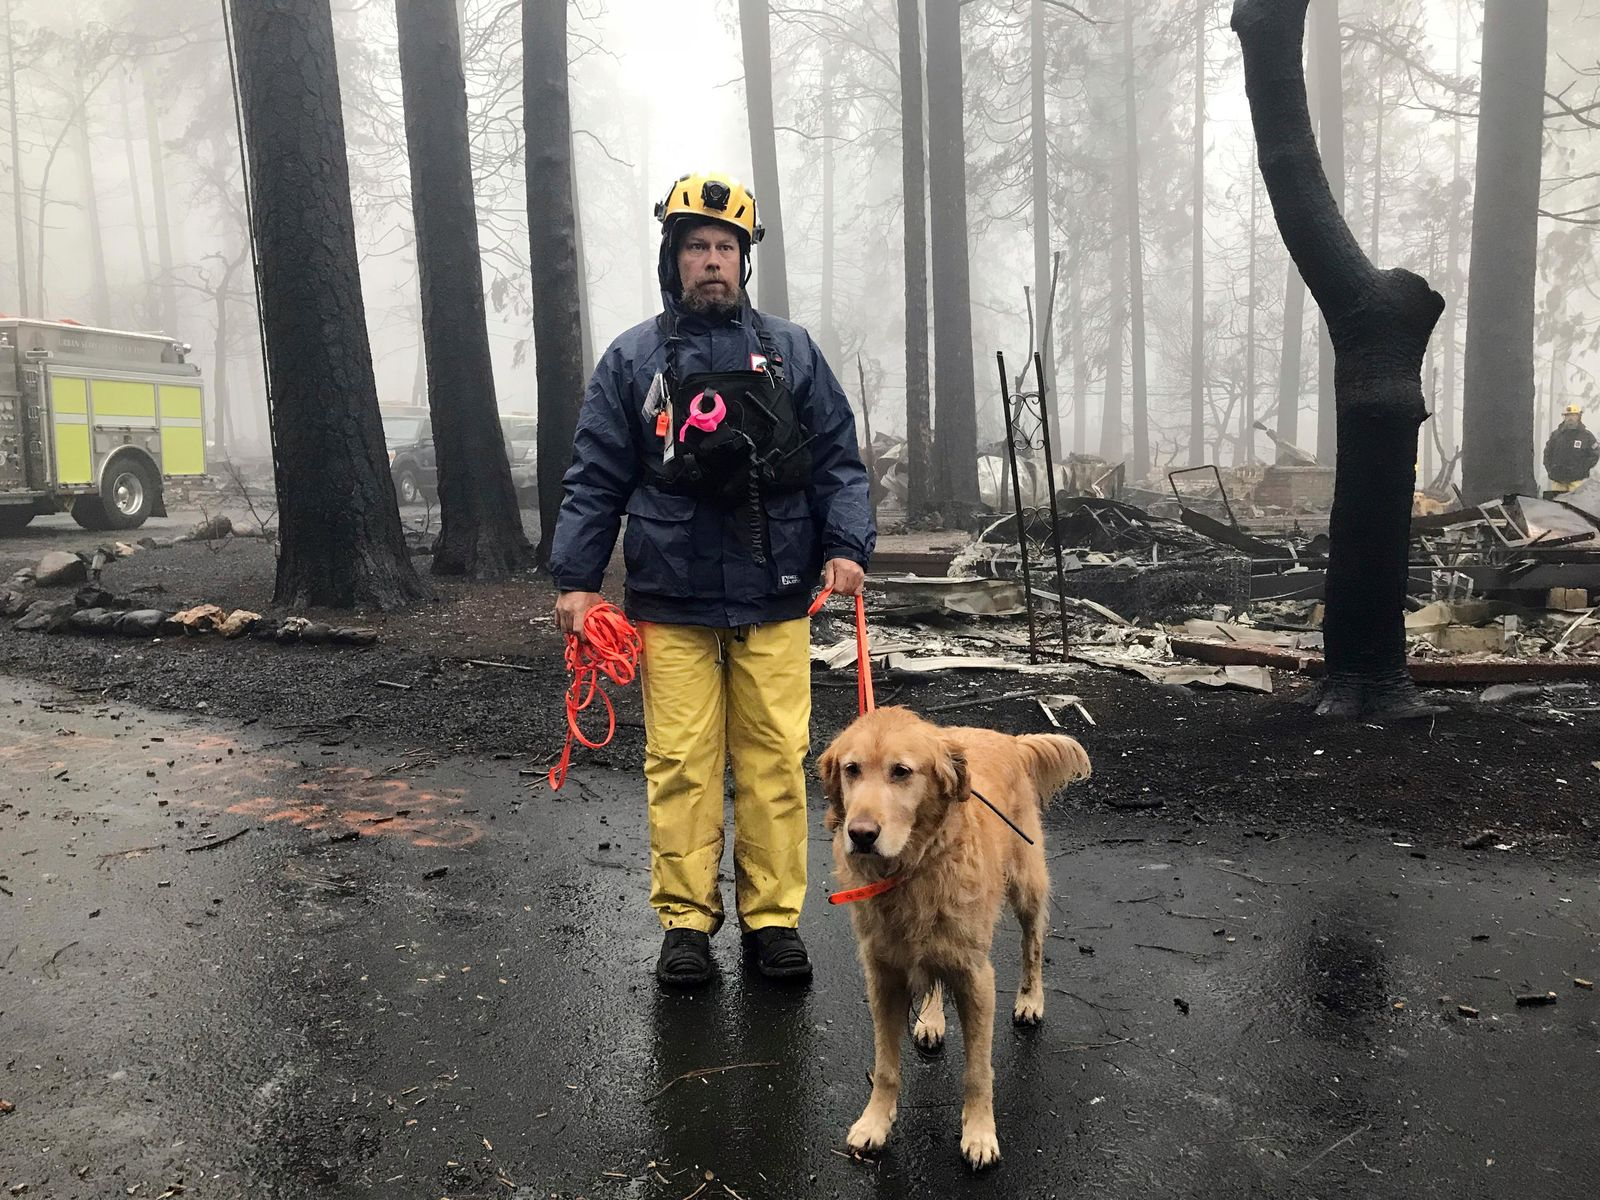 Eric Darling and his dog Wyatt are part of a search team from Orange County in Southern California who are among several teams conducting a second search of a mobile home park after the deadly Camp Fire in Paradise, Calif., Friday, Nov. 23, 2018. (AP Photo/Kathleen Ronayne)